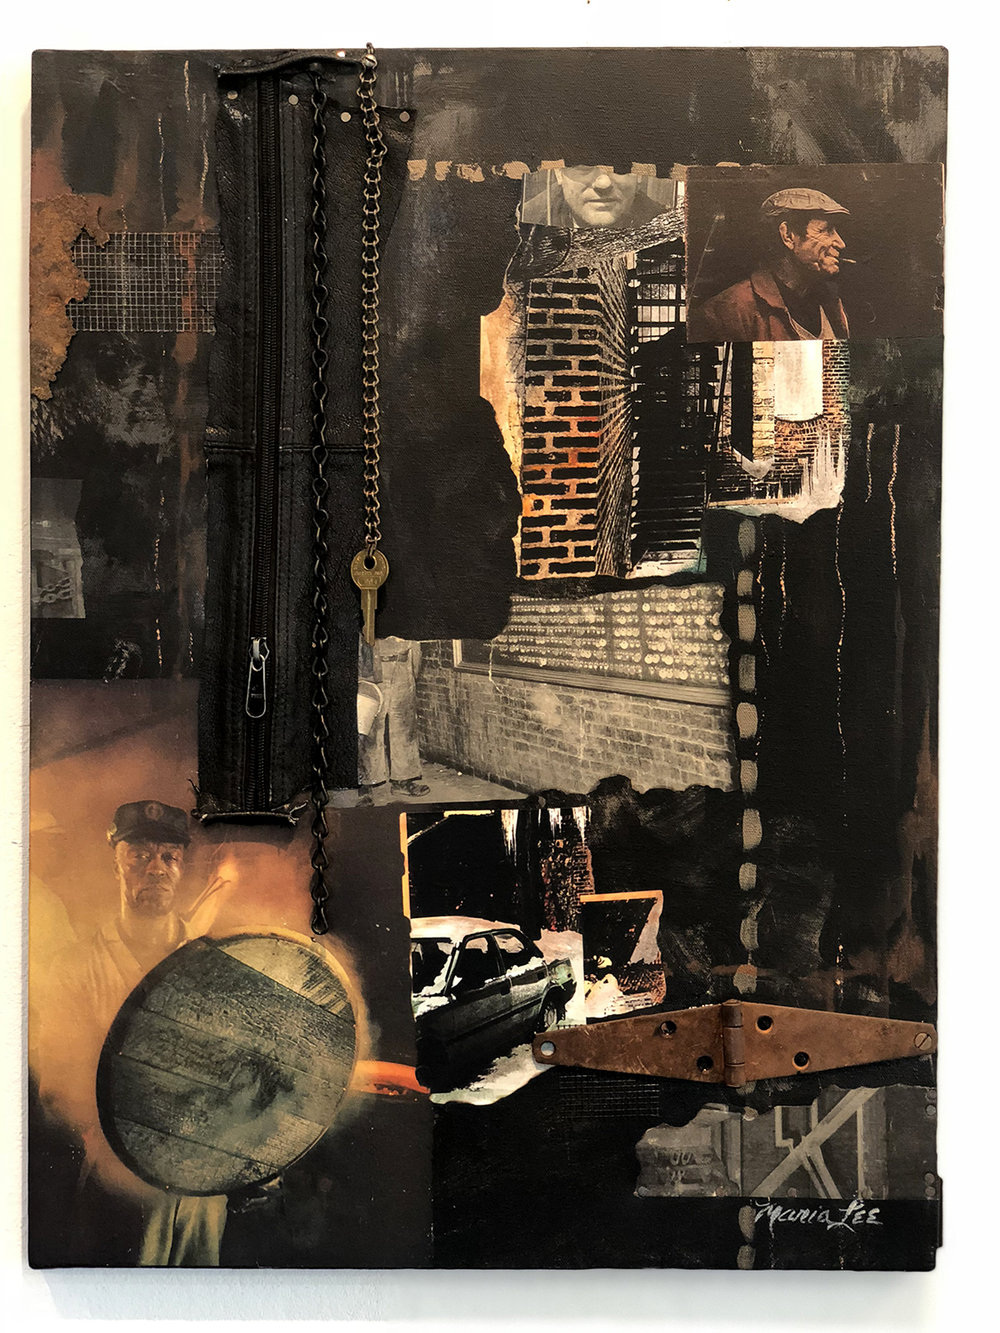 Maria Lee - Studio 4640 (Wildfire Studio) - 4th Floor WestOil Painting, Acrylic, Mixed MediumPredominately an oil painter of representational art, cityscape, landscape, and period pieces. Member of Oil Painters of America. Maria's oils are in homes locally, nationally, and internationally. Currently experimenting in new mediums.